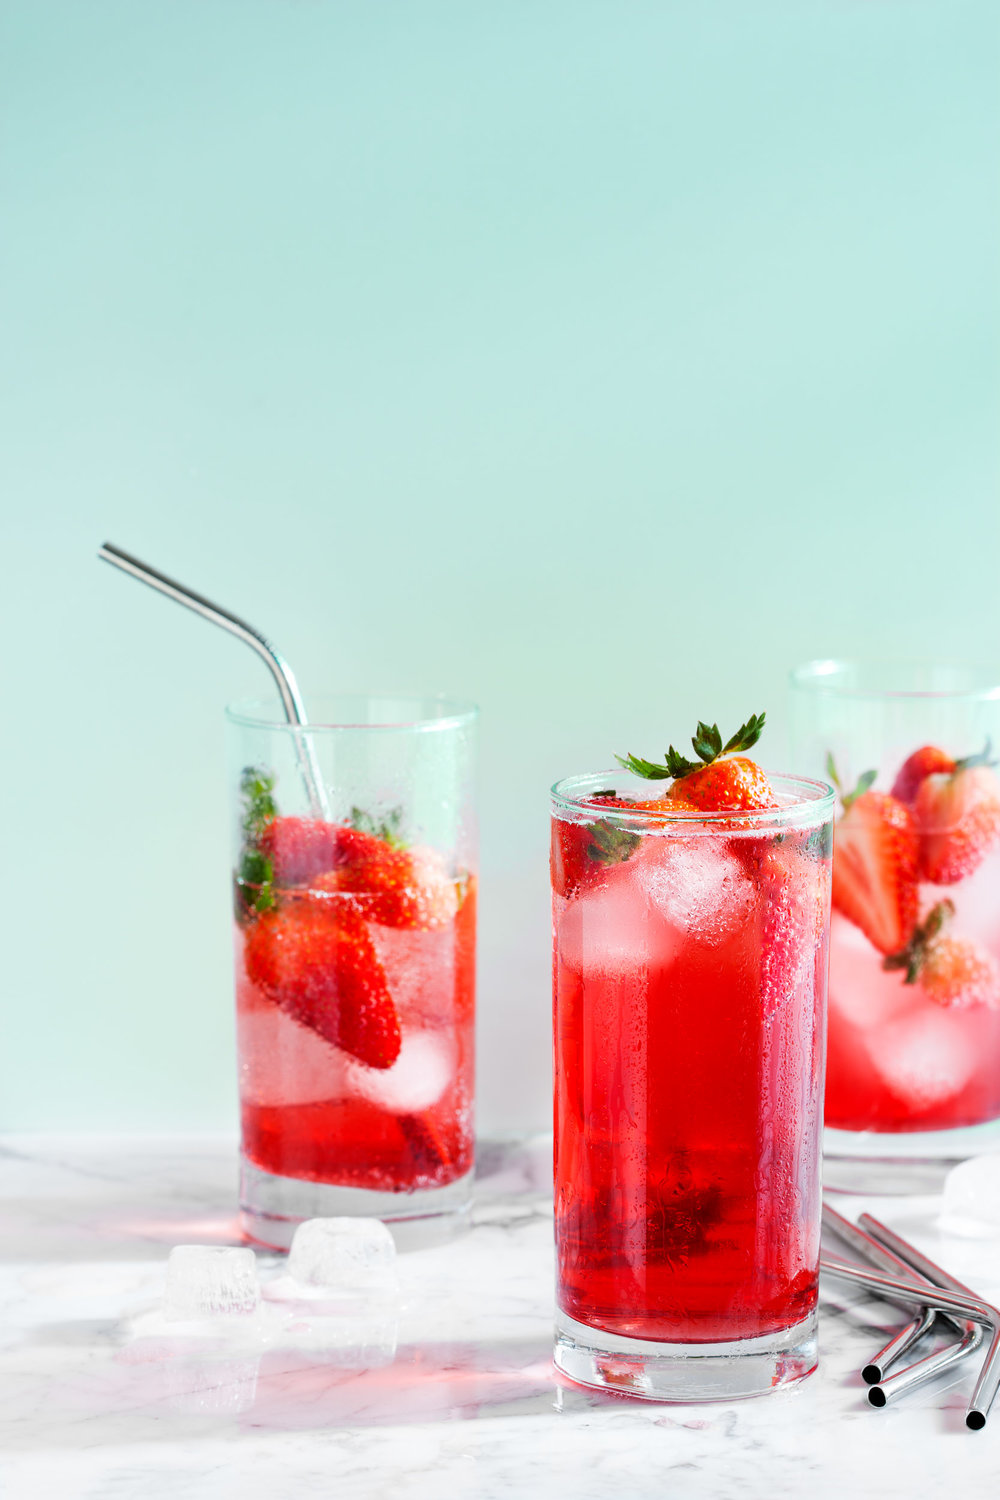 food-strawberry-spritzer-lesliegrow.jpg